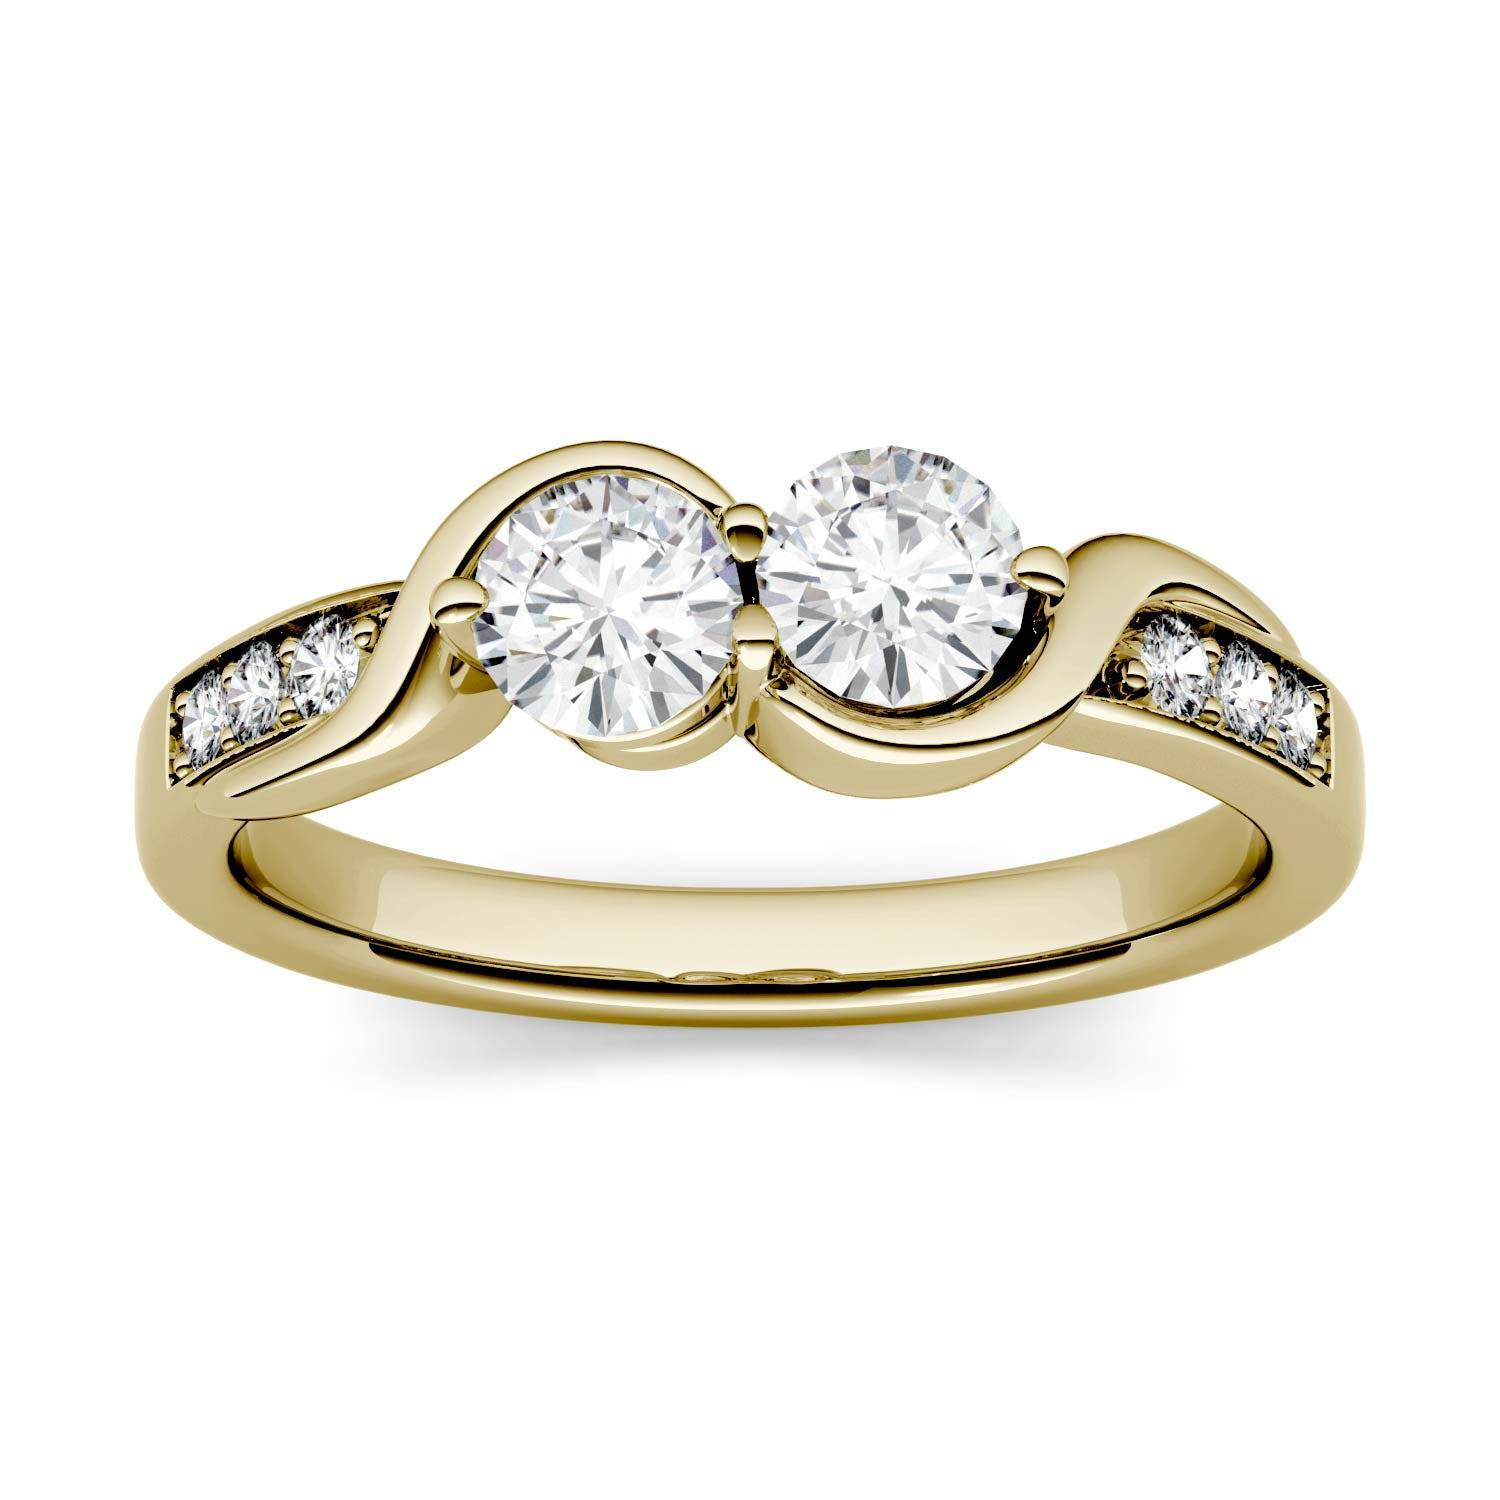 Charles & Colvard Two Stone Swirl with Side Accents Wedding Ring in 14K Yellow Gold, Size: 9, 1.12CTW Round Forever One - Colorless Moissanite Charles & Colvard  - Yellow Gold - Size: 9